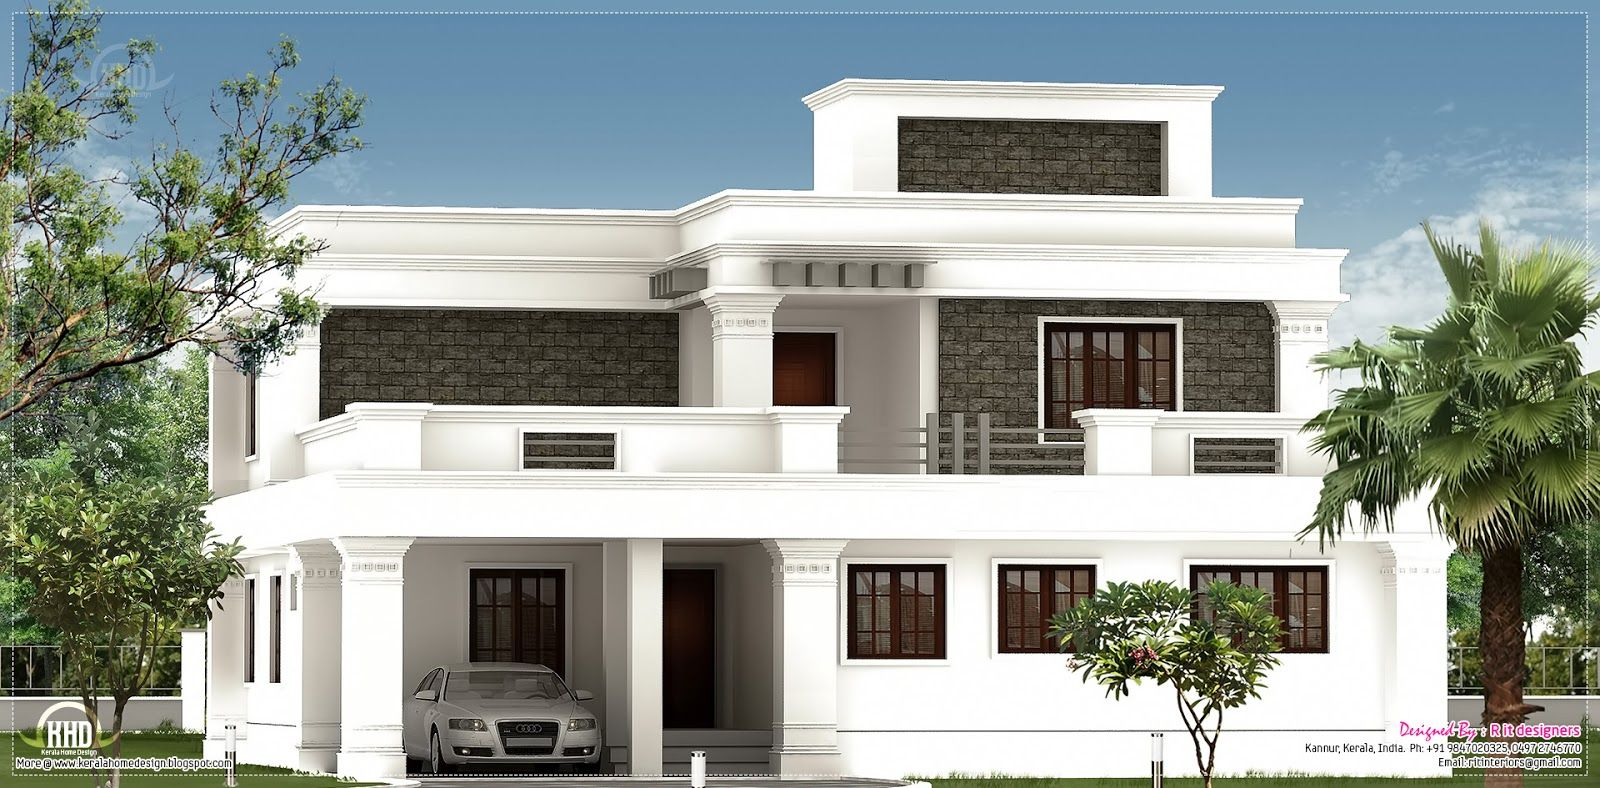 Flat roof homes designs flat roof villa exterior in 2400 for One floor house exterior design